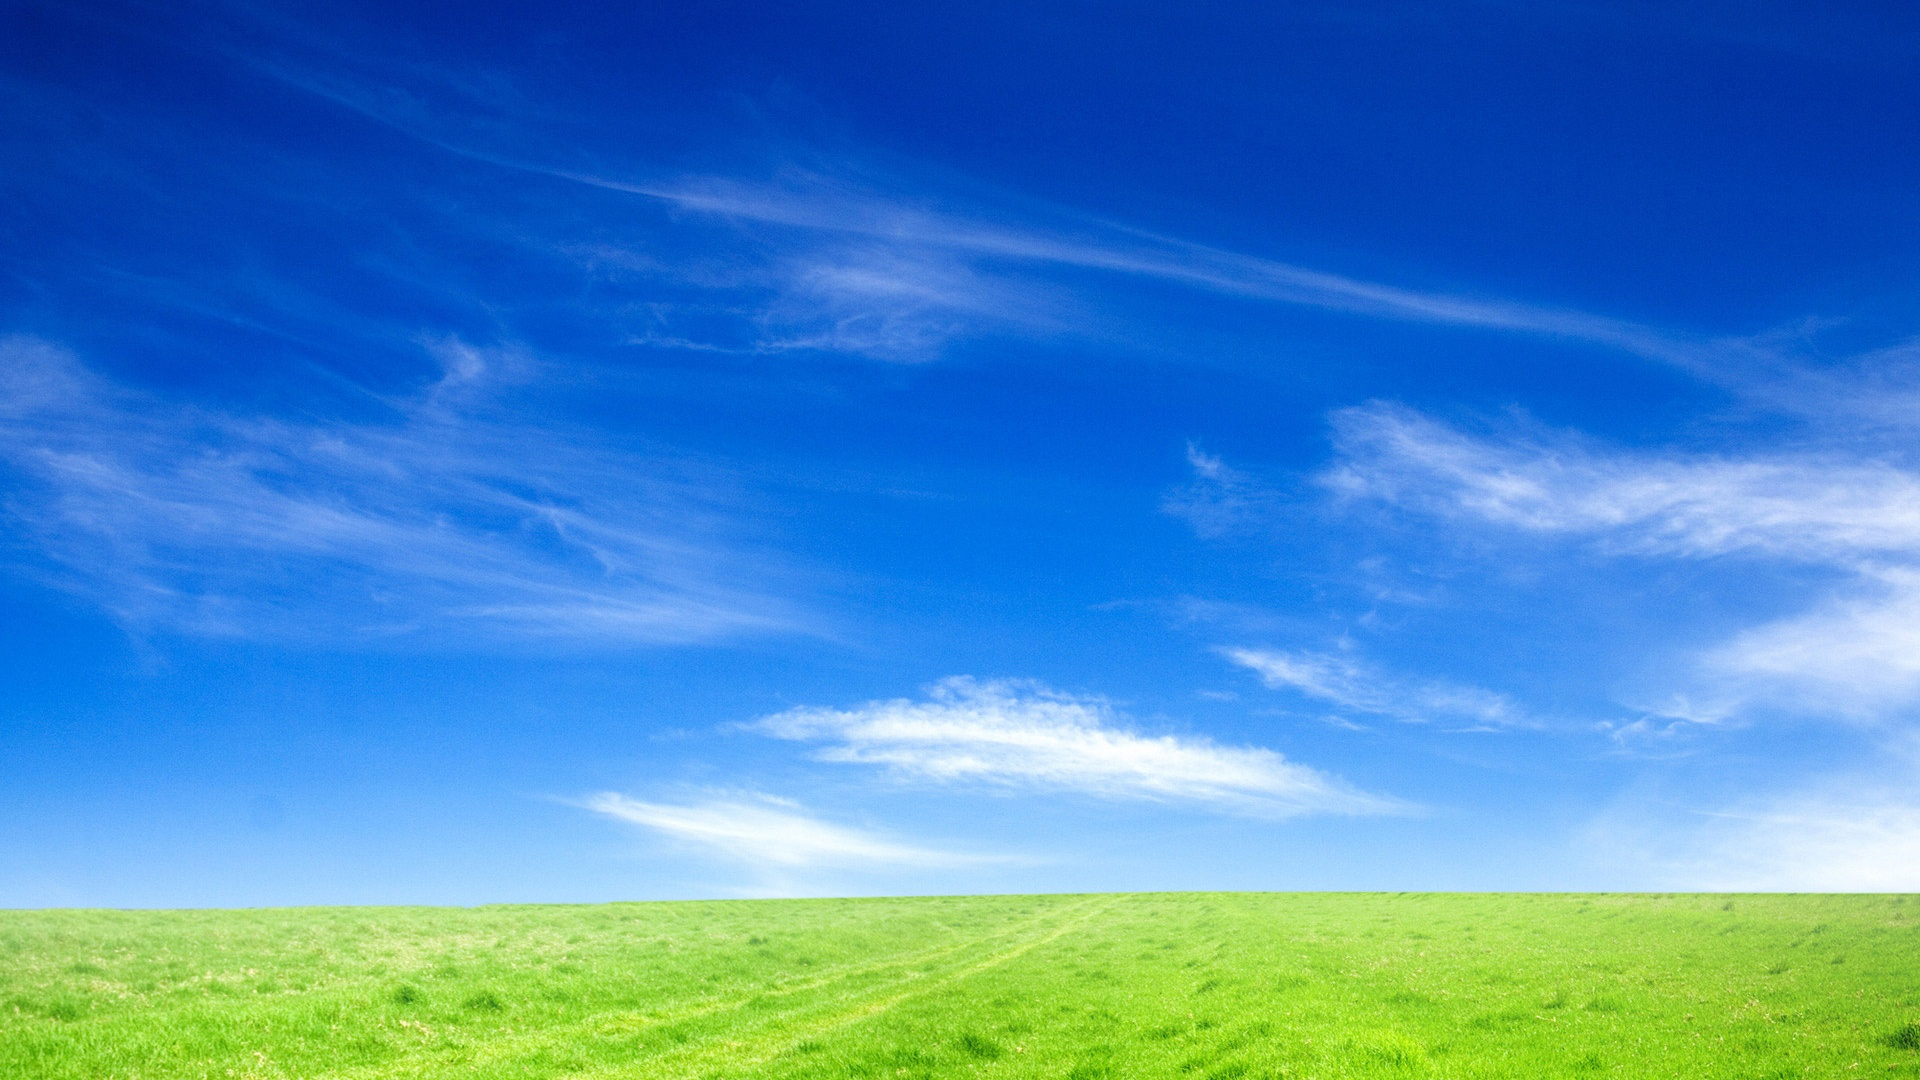 blue sky and green grass wallpapers in jpg format for free